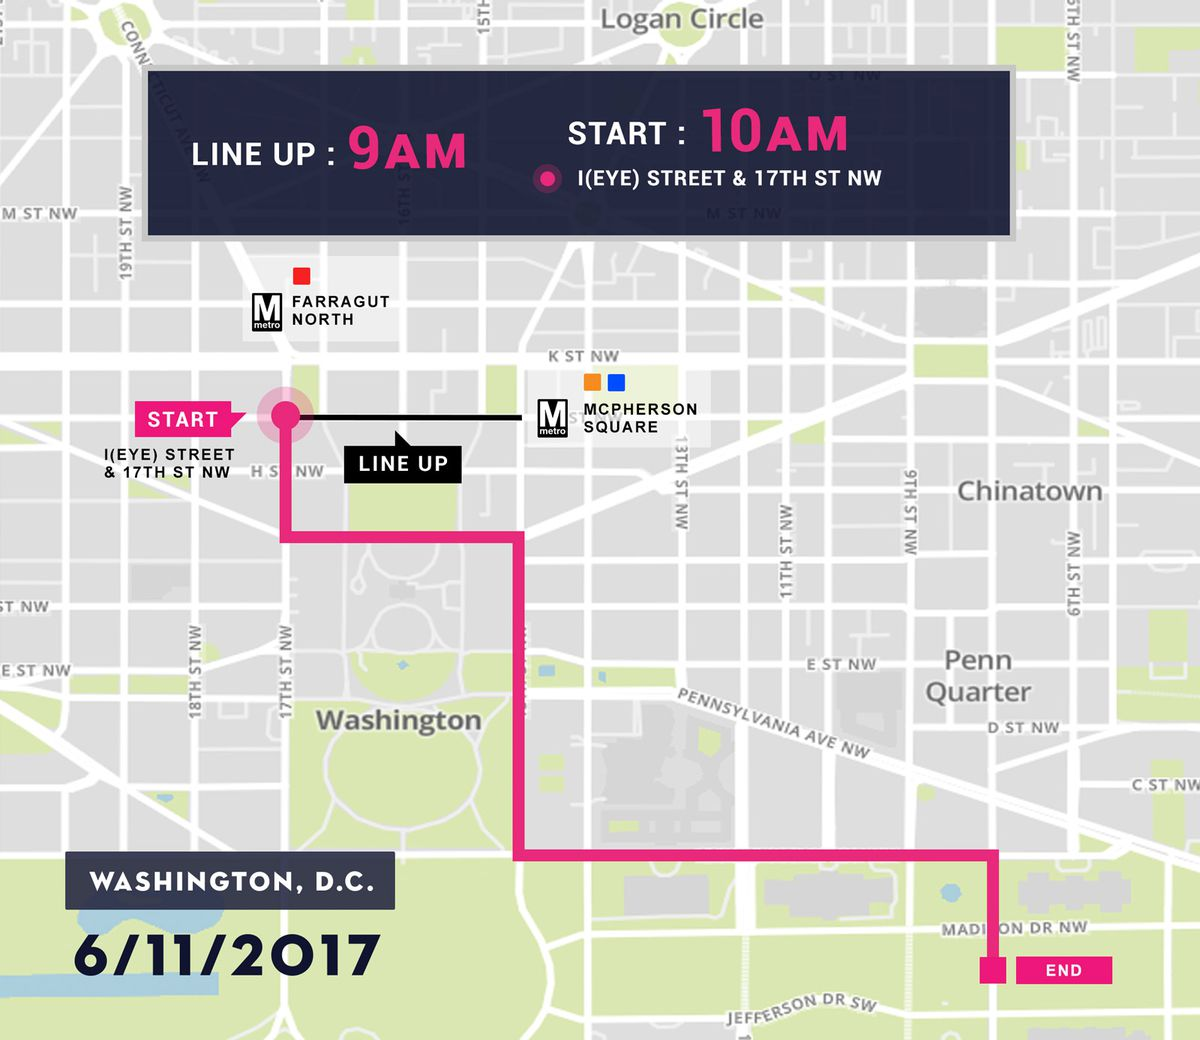 The route for the Equality March.